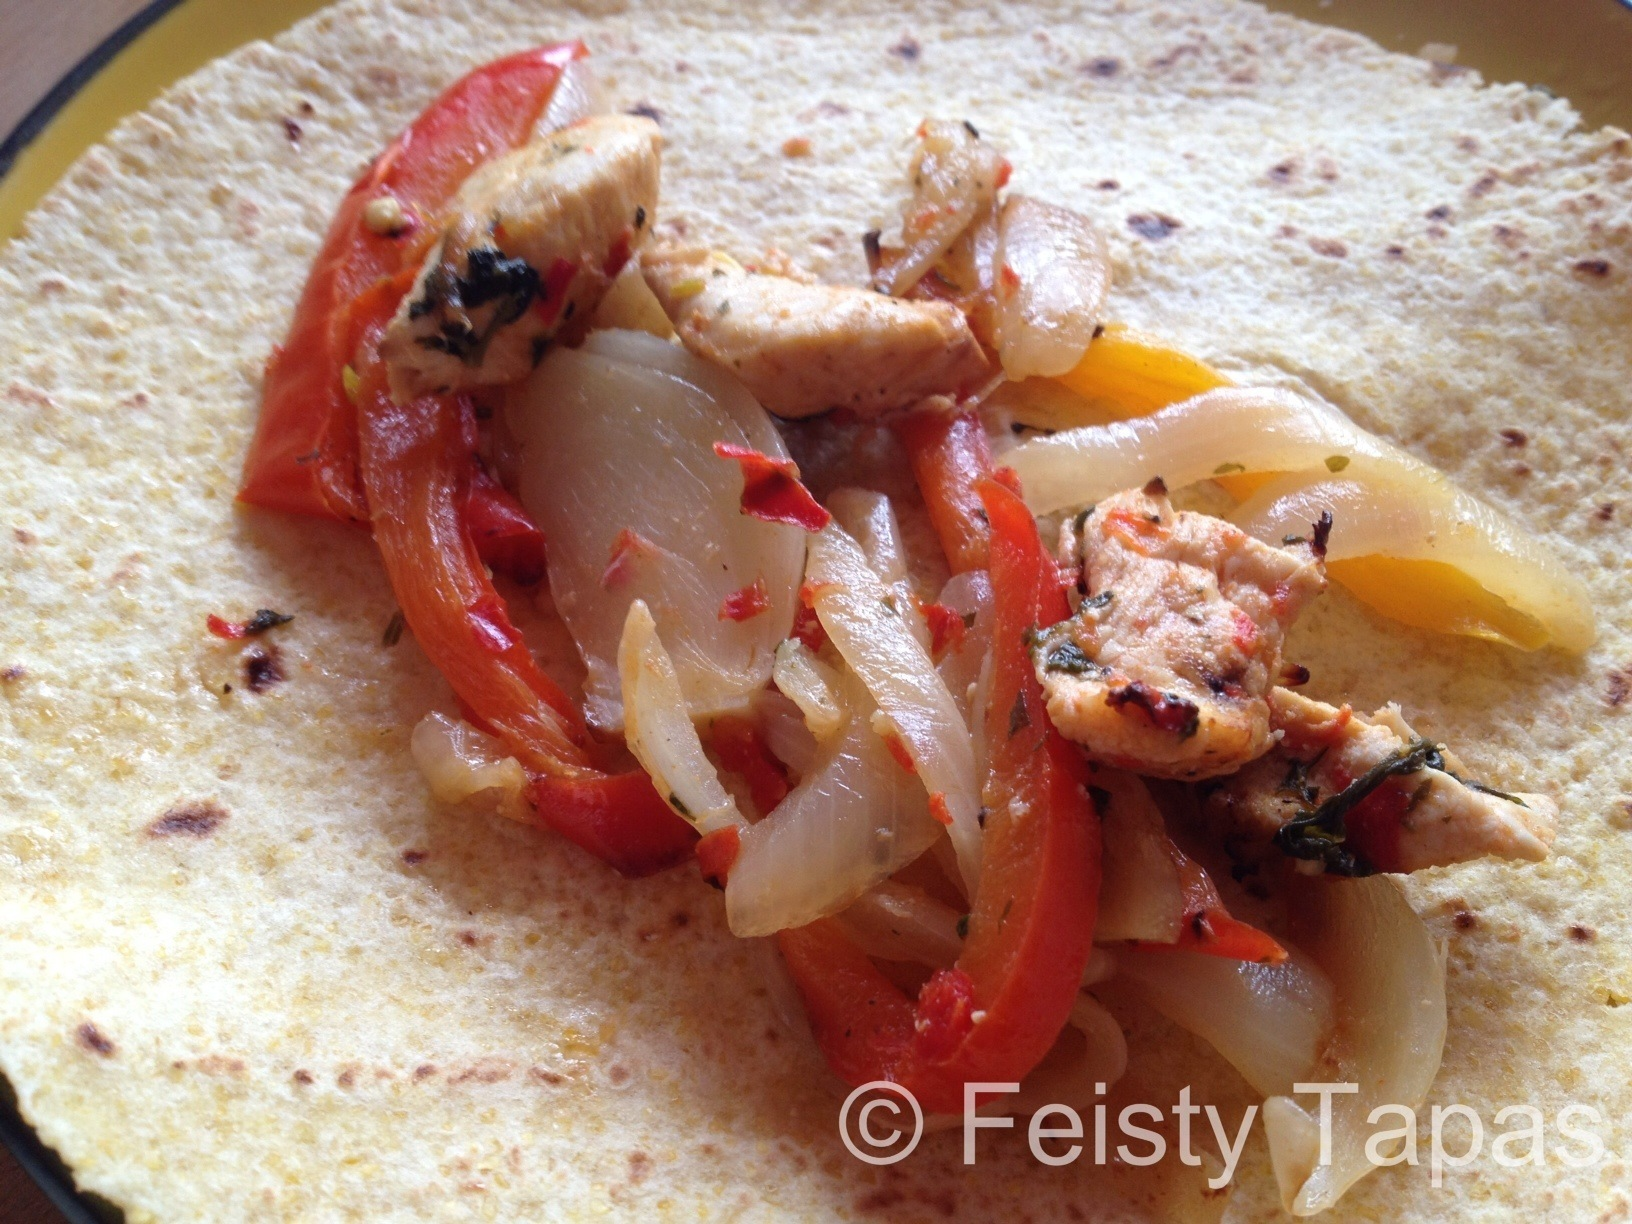 Thermomix recipe: Chicken fajitas with the help of the Thermomix, food processor, blender or hand